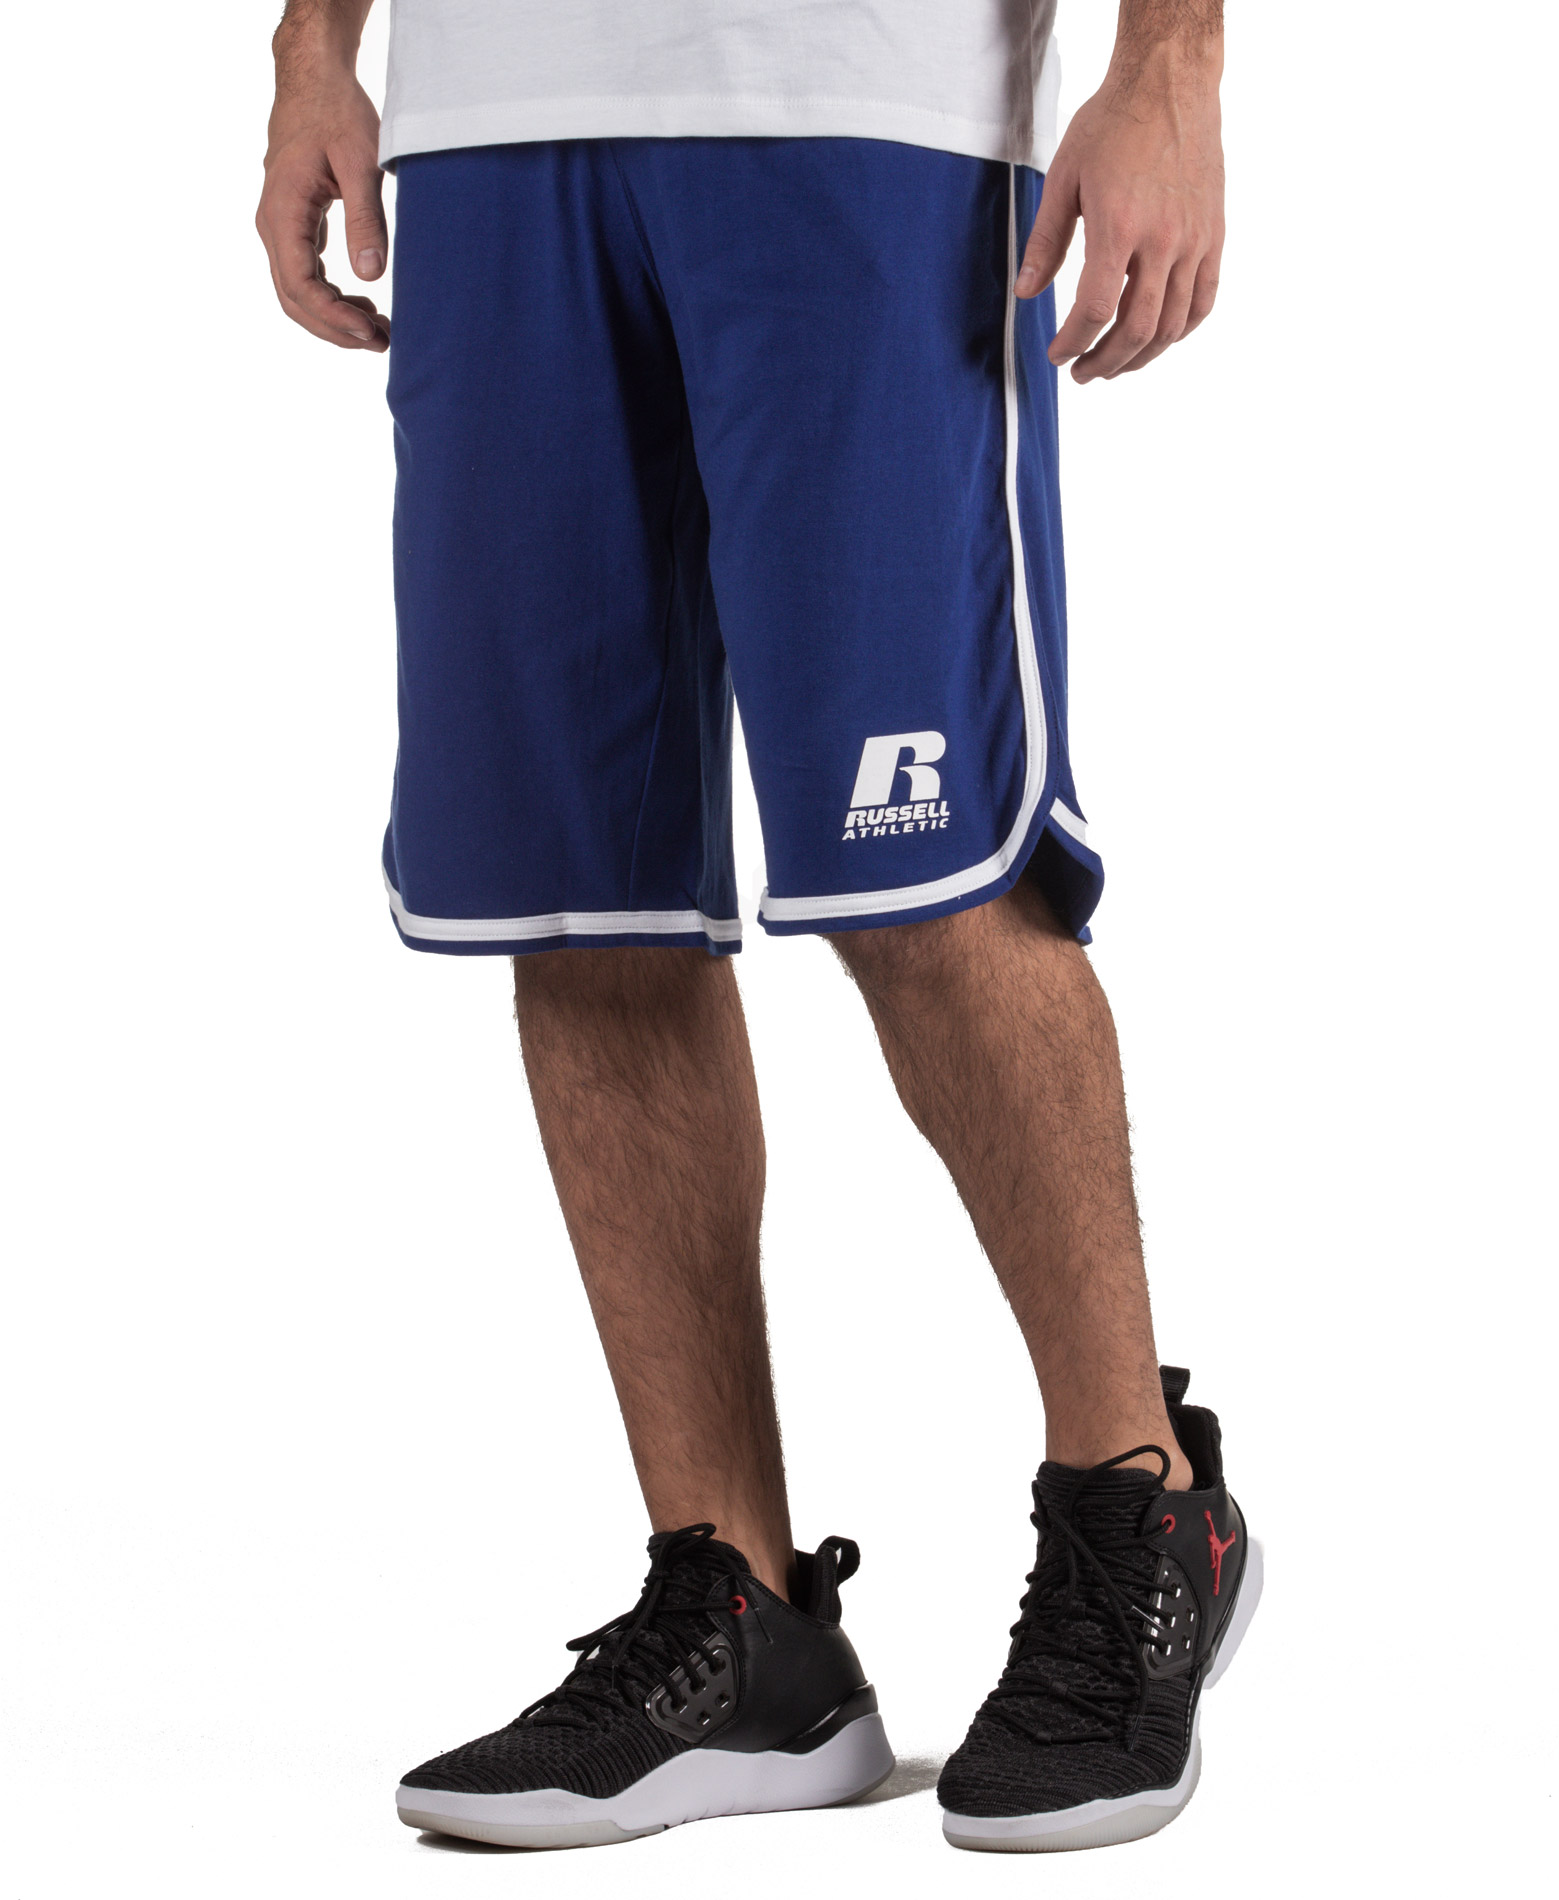 Russell Athletic MEN'S SHORTS A9-088-1-138 Μπλέ